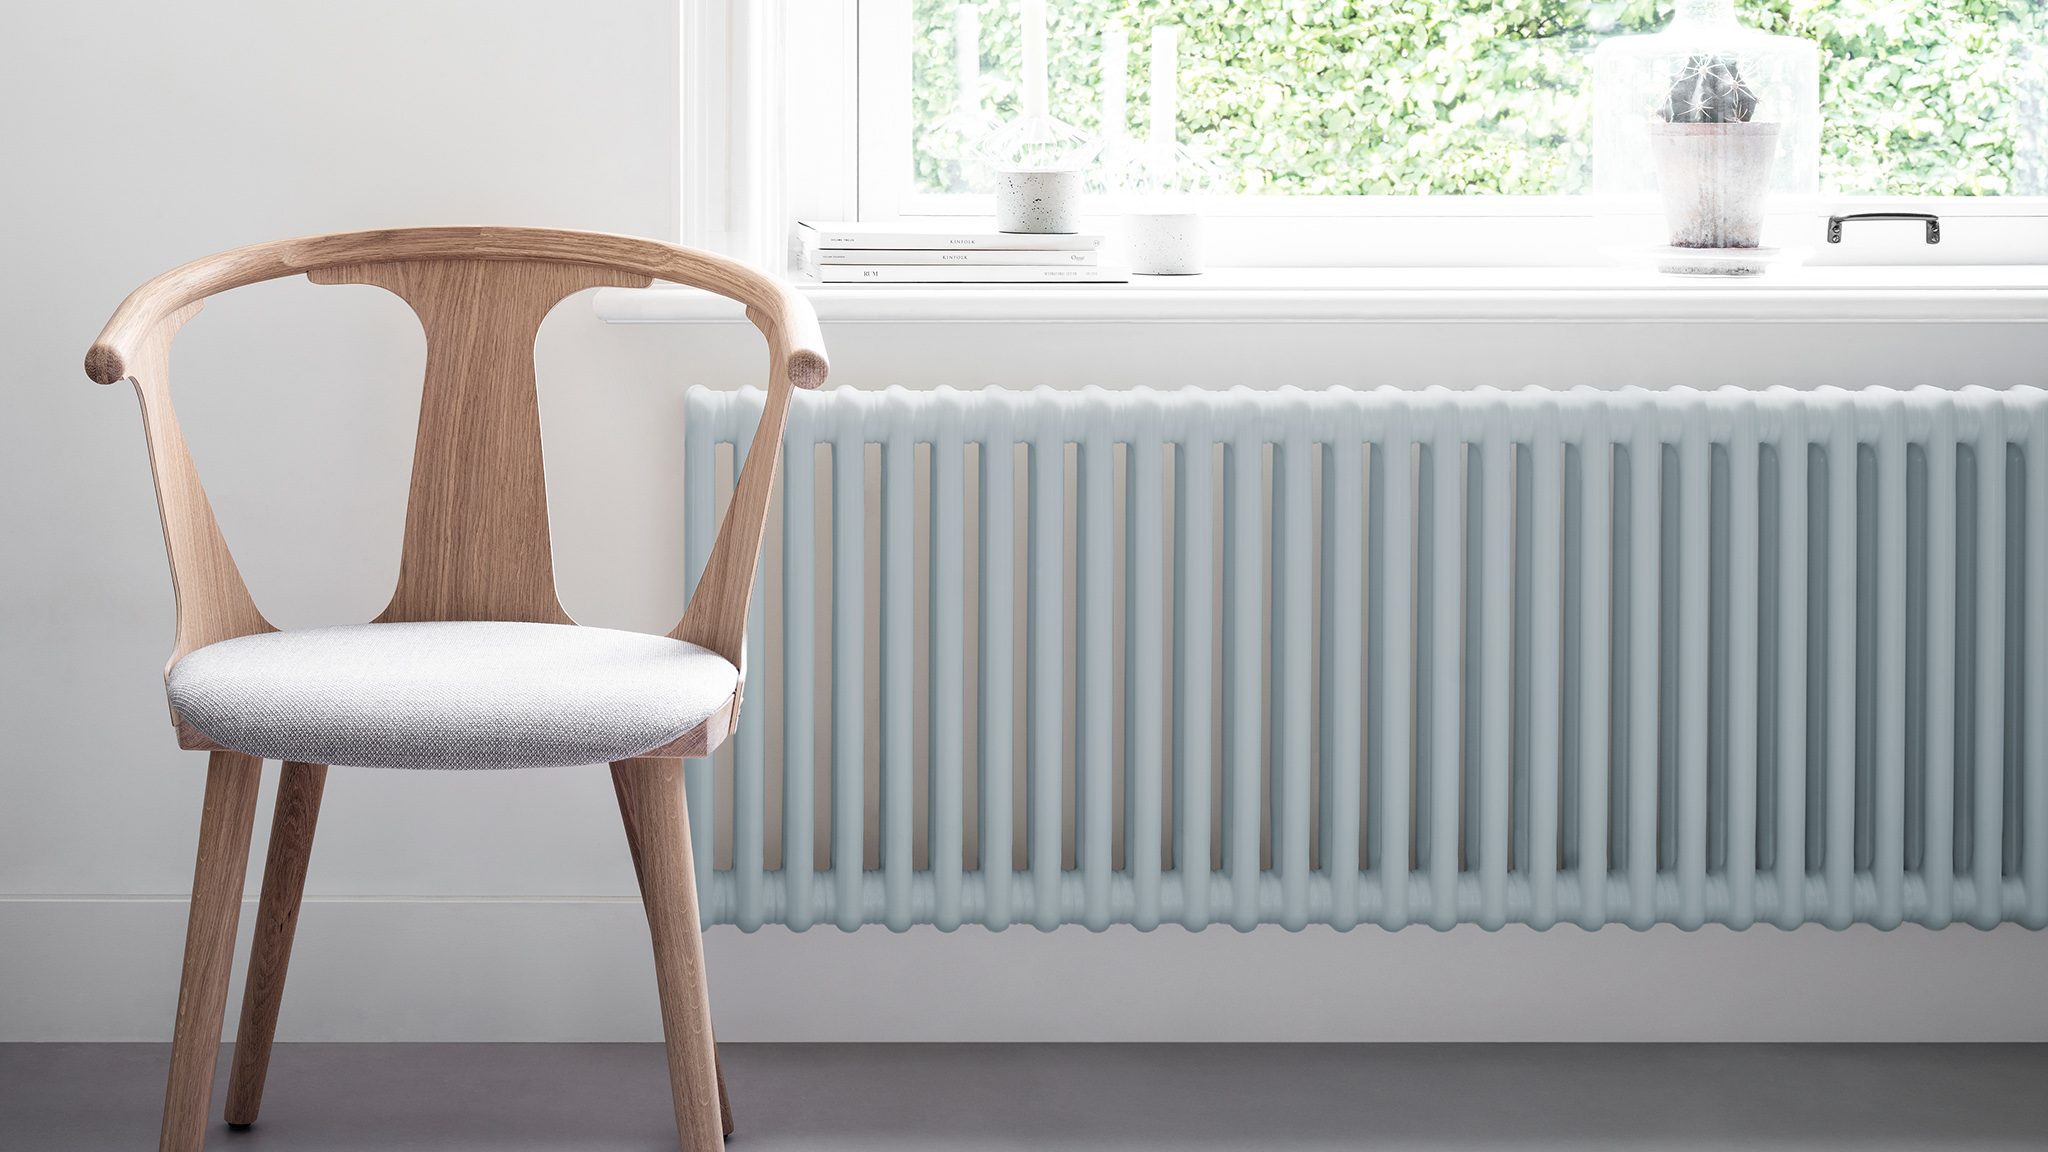 dulux-simply-refresh-radiators-ideas-global-4